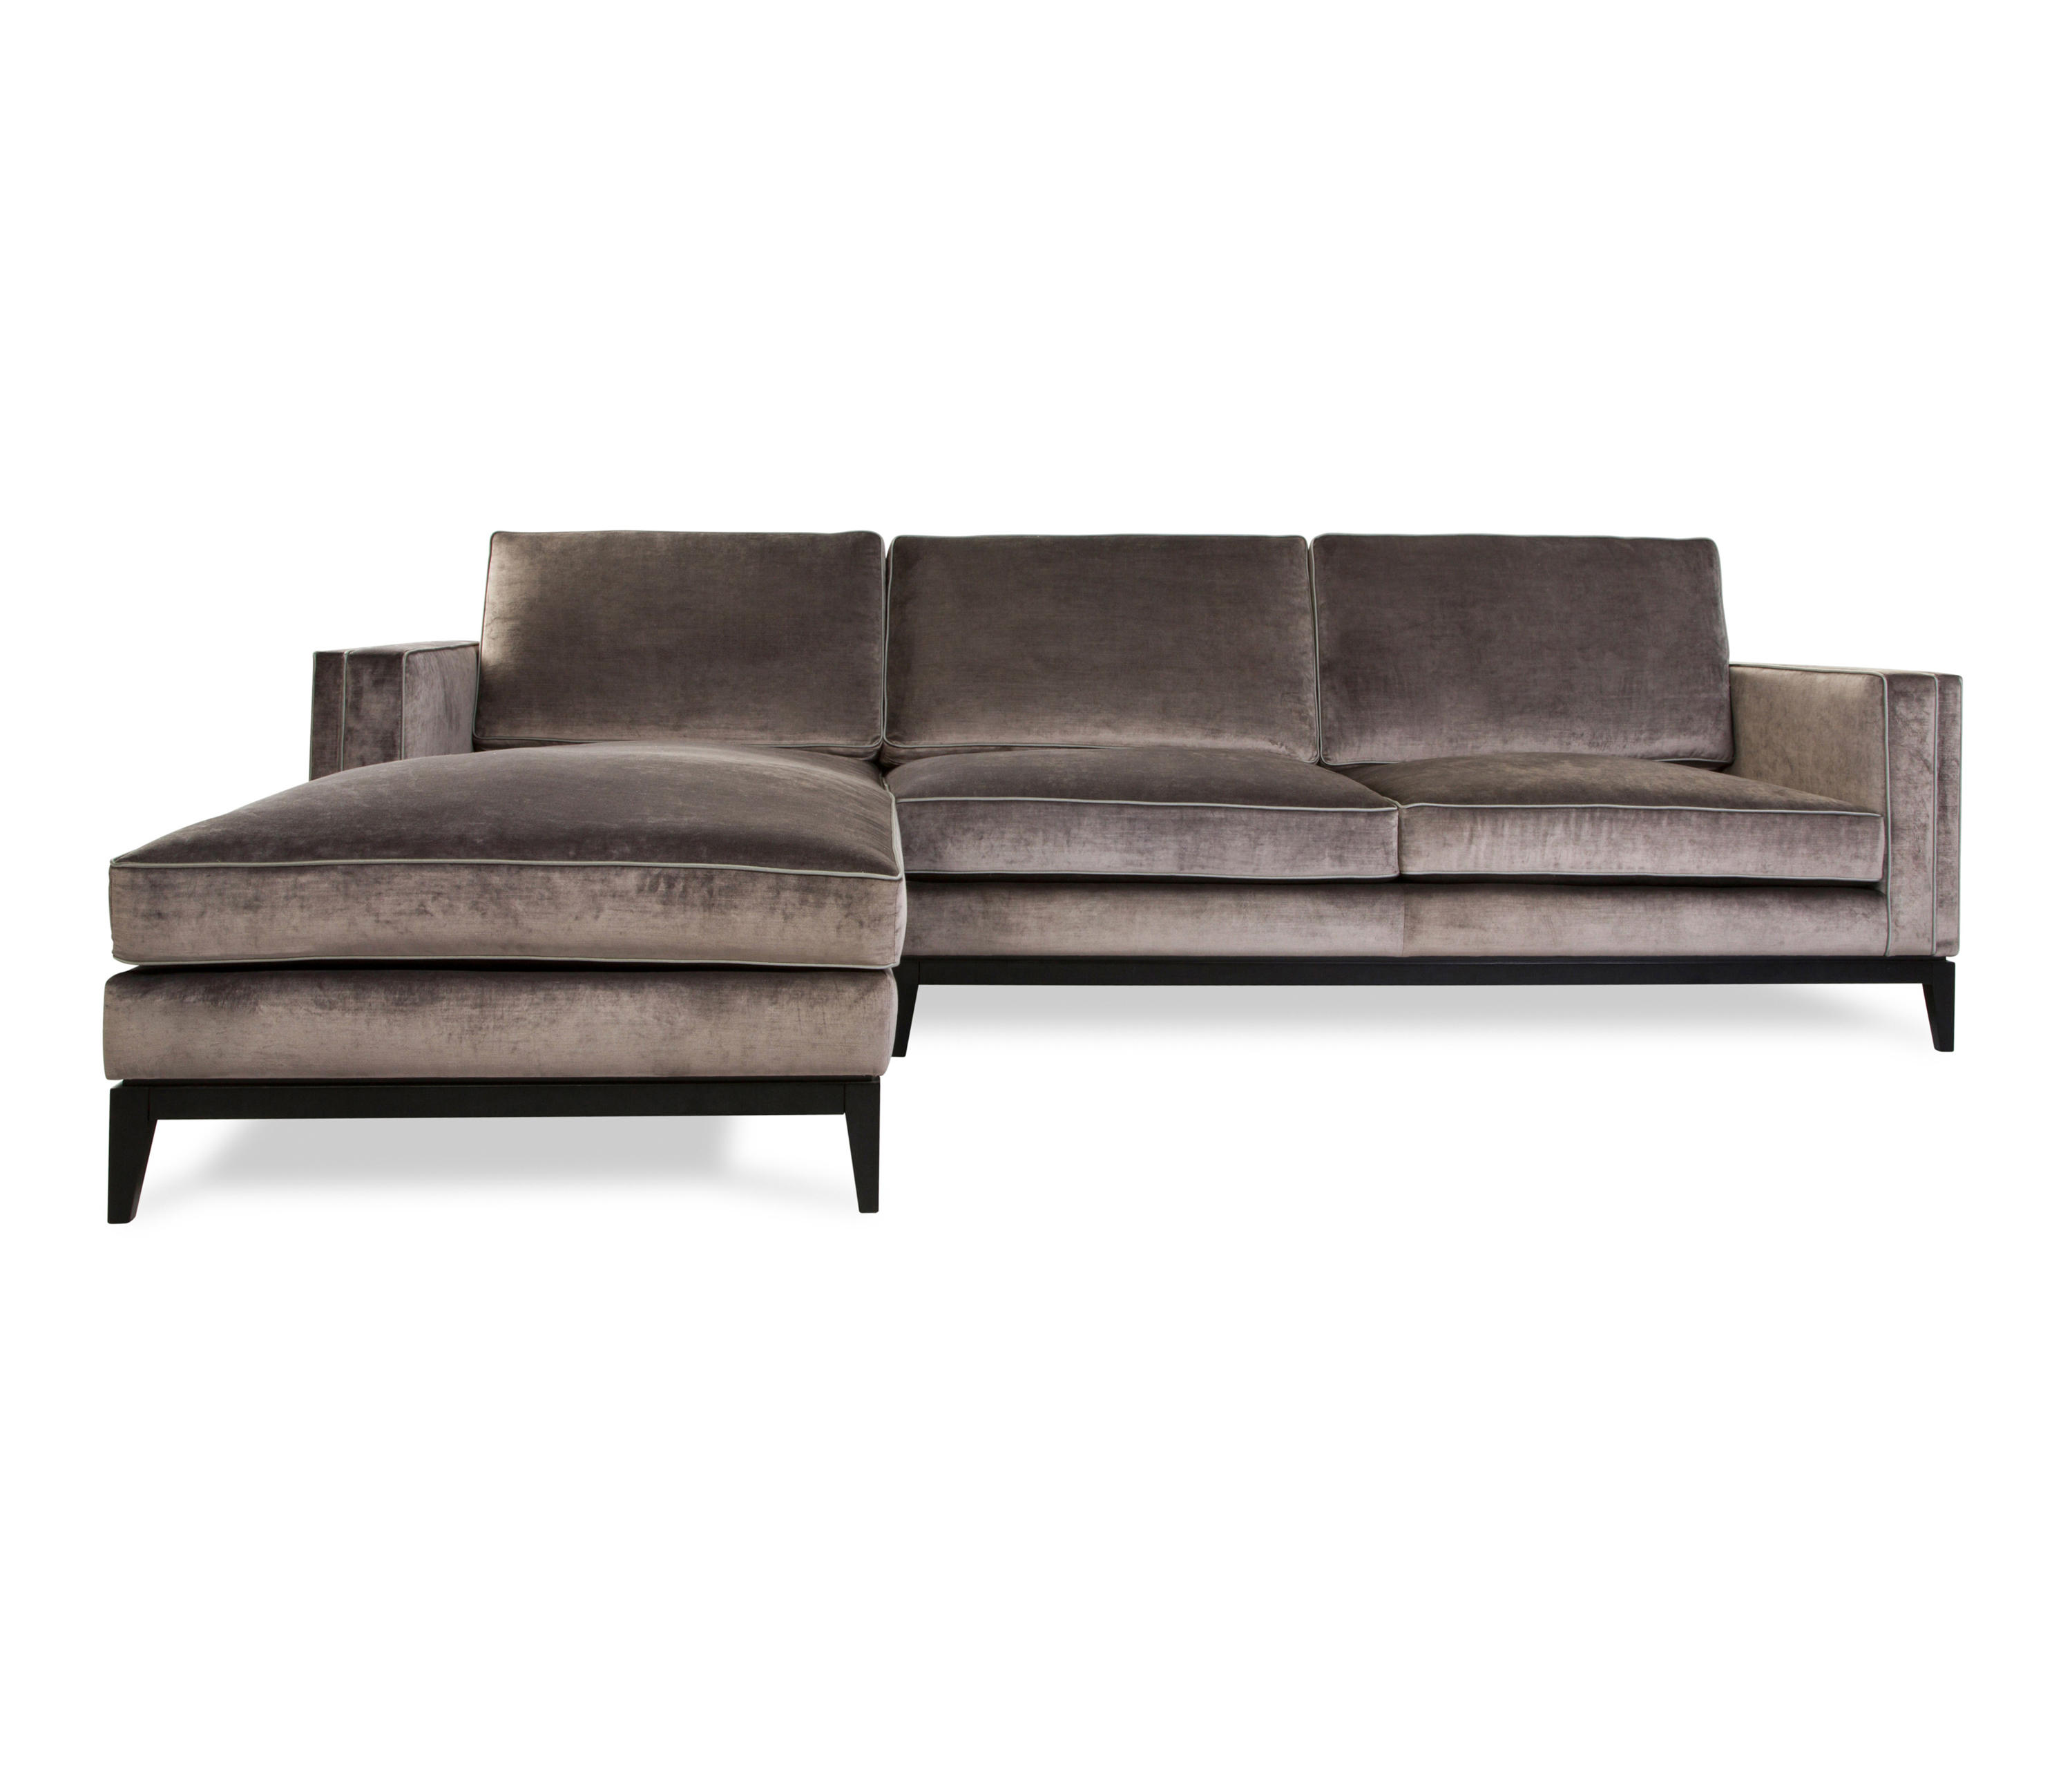 Leather Corner Sofas Fast Delivery Scandlecandlecom : hockney delux cor corner sofas 2 b from scandlecandle.com size 3000 x 2564 jpeg 319kB